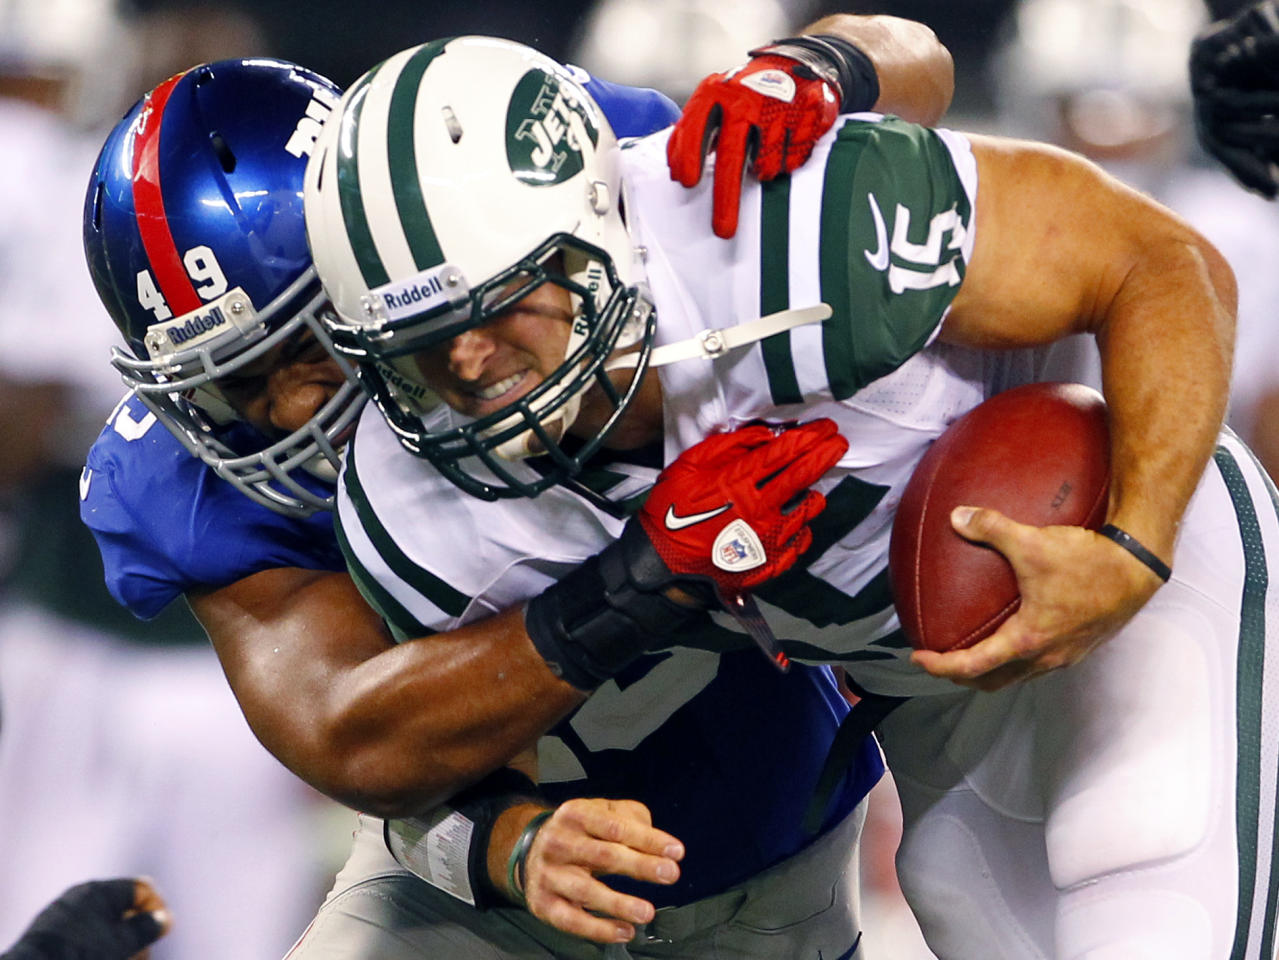 New York Giants linebacker Spencer Paysinger (49) tackles New York Jets quarterback Tim Tebow (15) during the second half of a preseason NFL football game on Saturday, Aug. 18, 2012, in East Rutherford, N.J. (AP Photo/Rich Schultz)